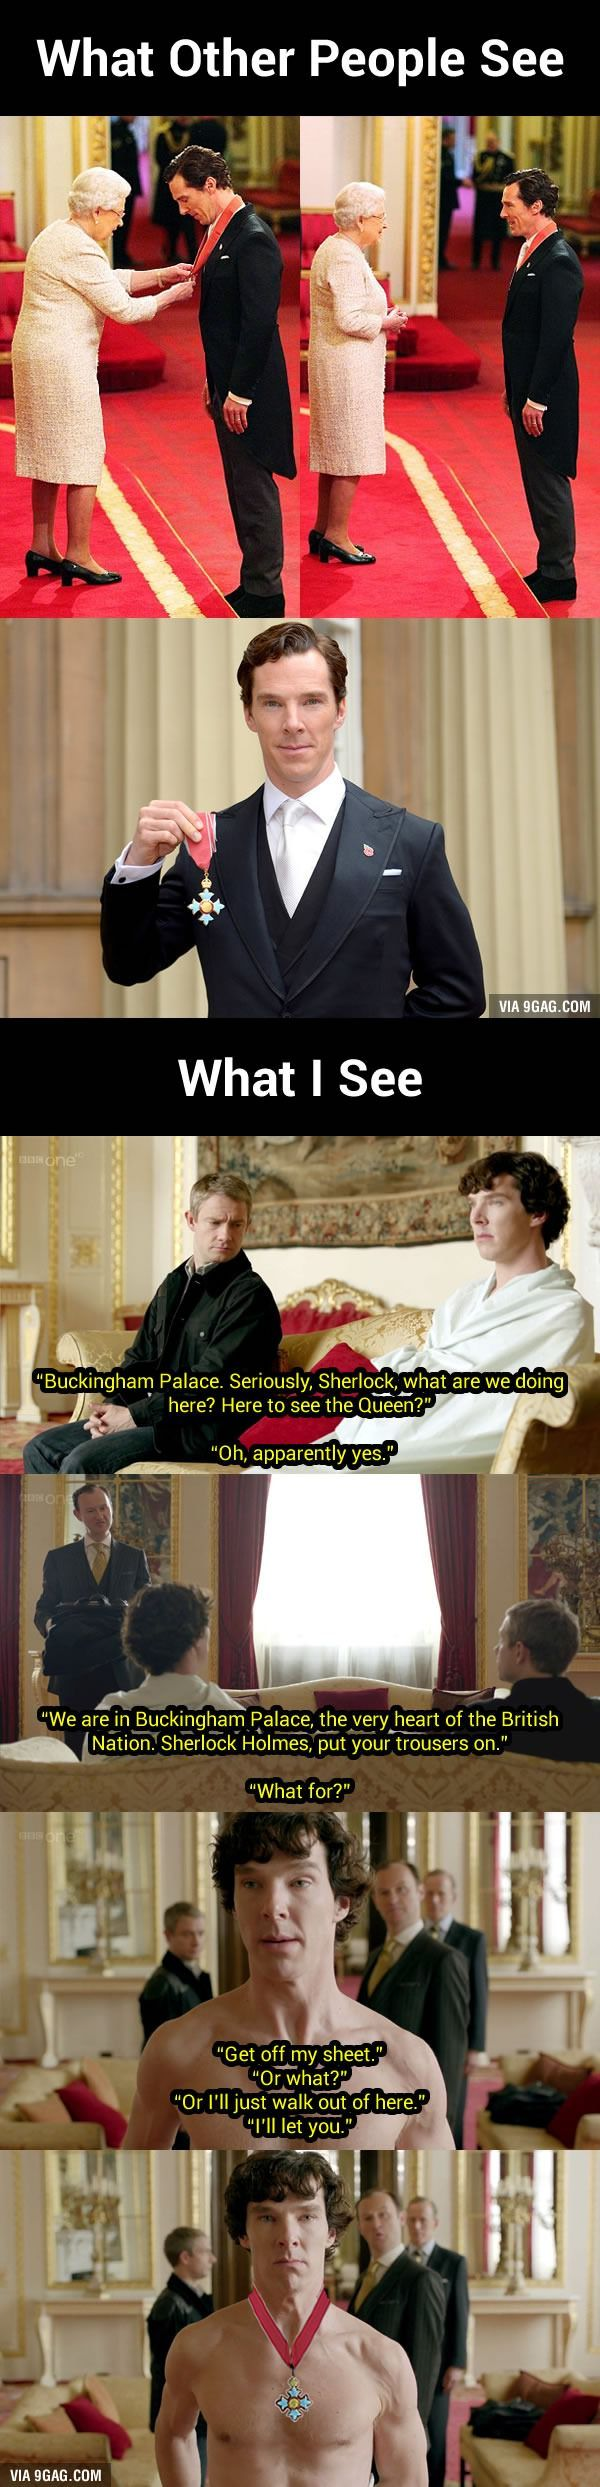 Sherlock Meets The Queen: Benedict Cumberbatch Receiving CBE Looks Oddly Familiar…